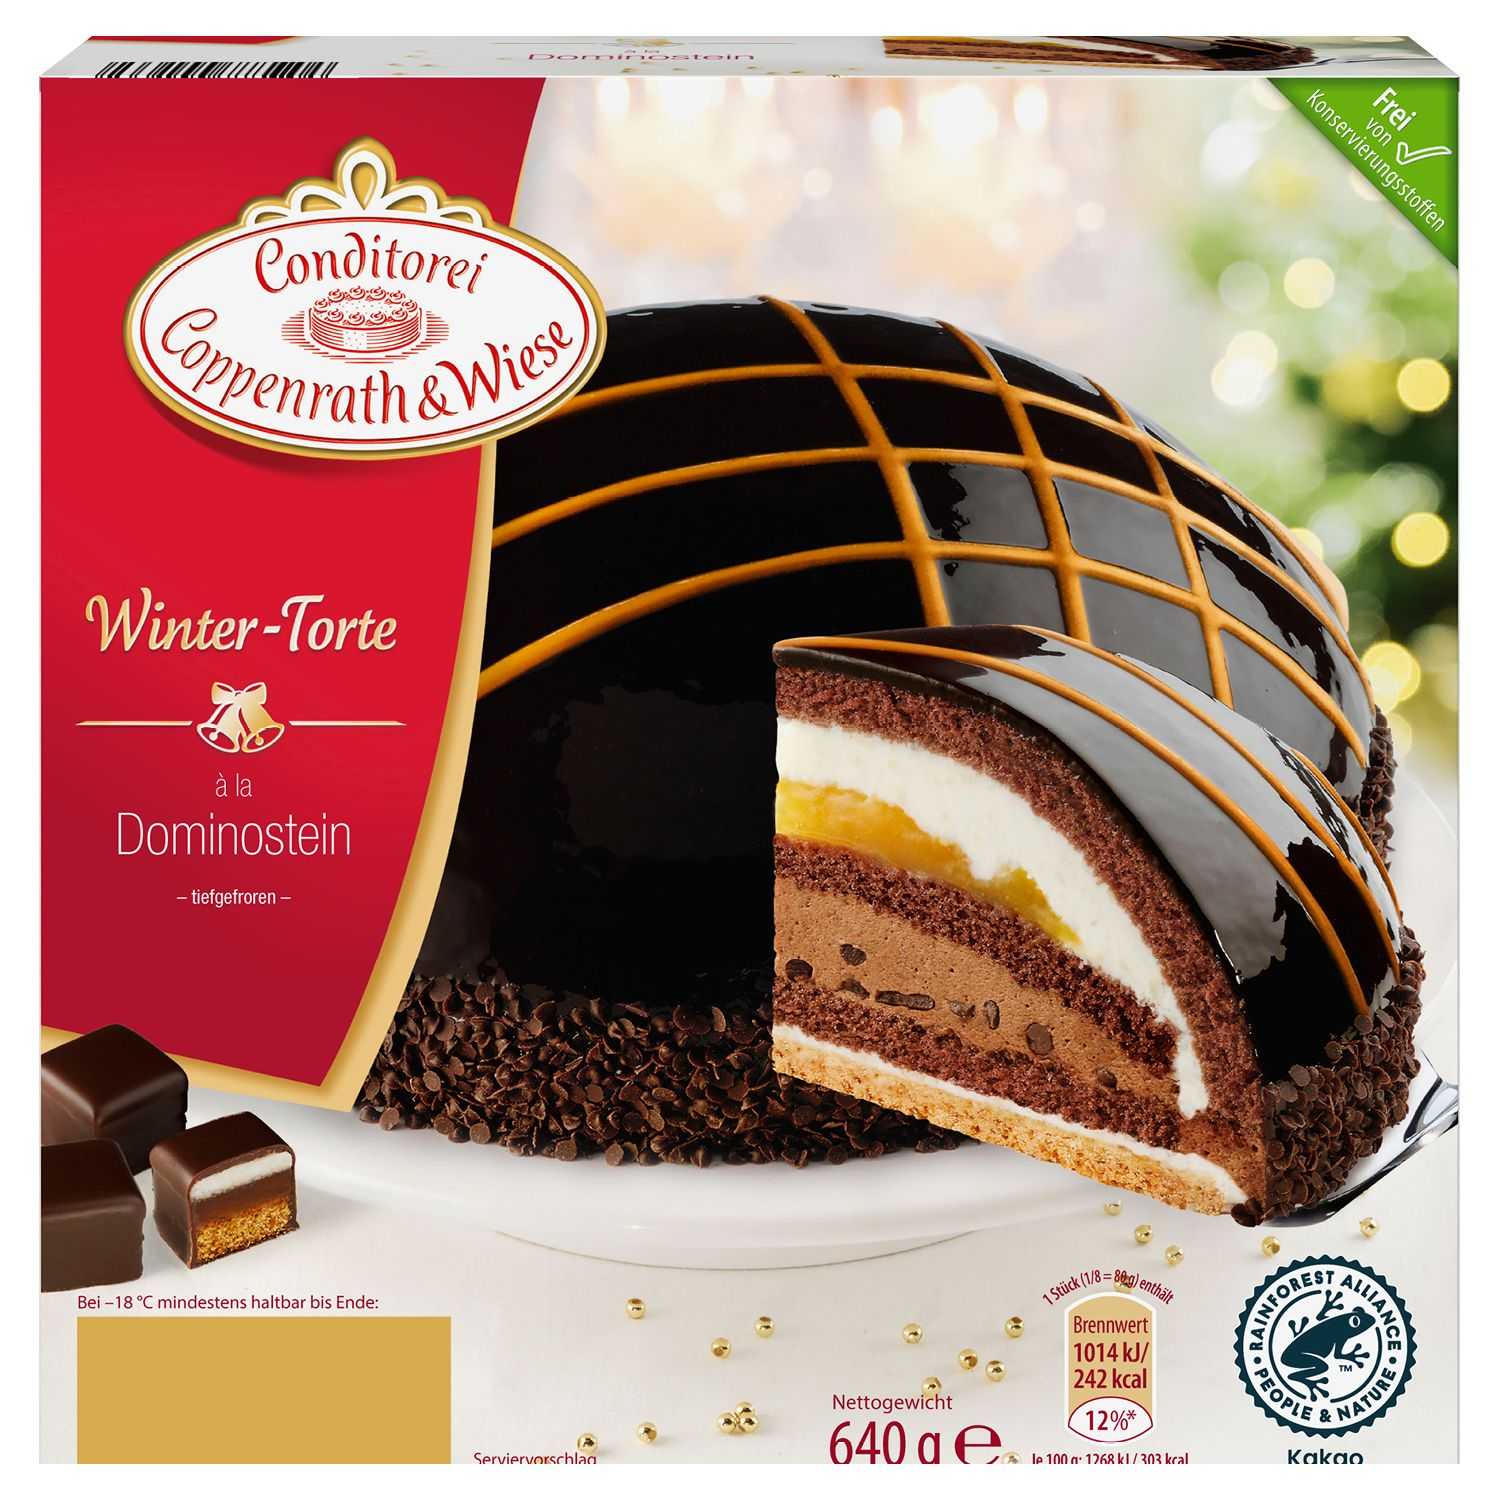 Conditorei Coppenrath & Wiese Winter-Torte 640 g*